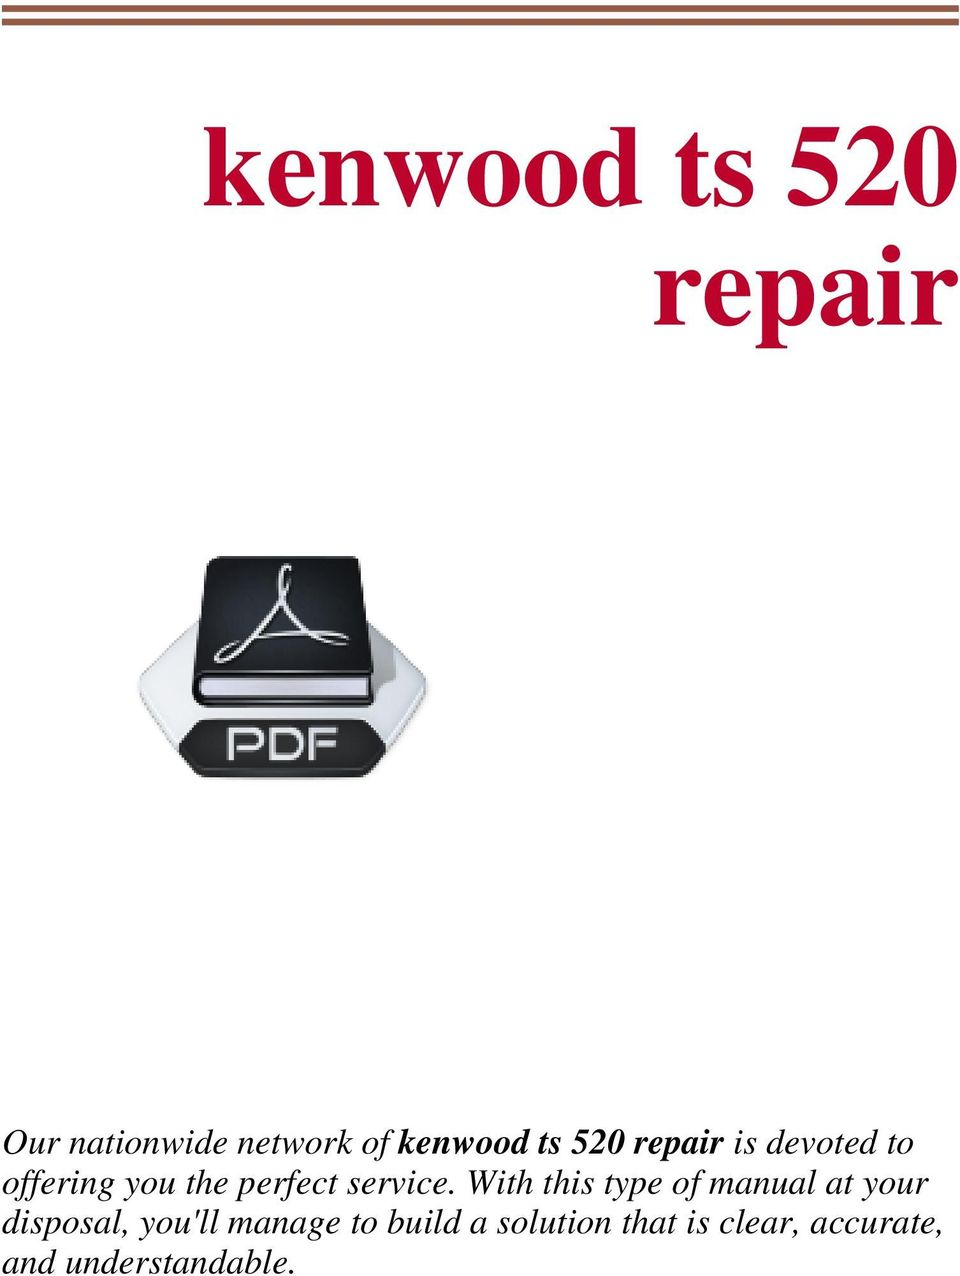 kenwood ts 520 repair pdf